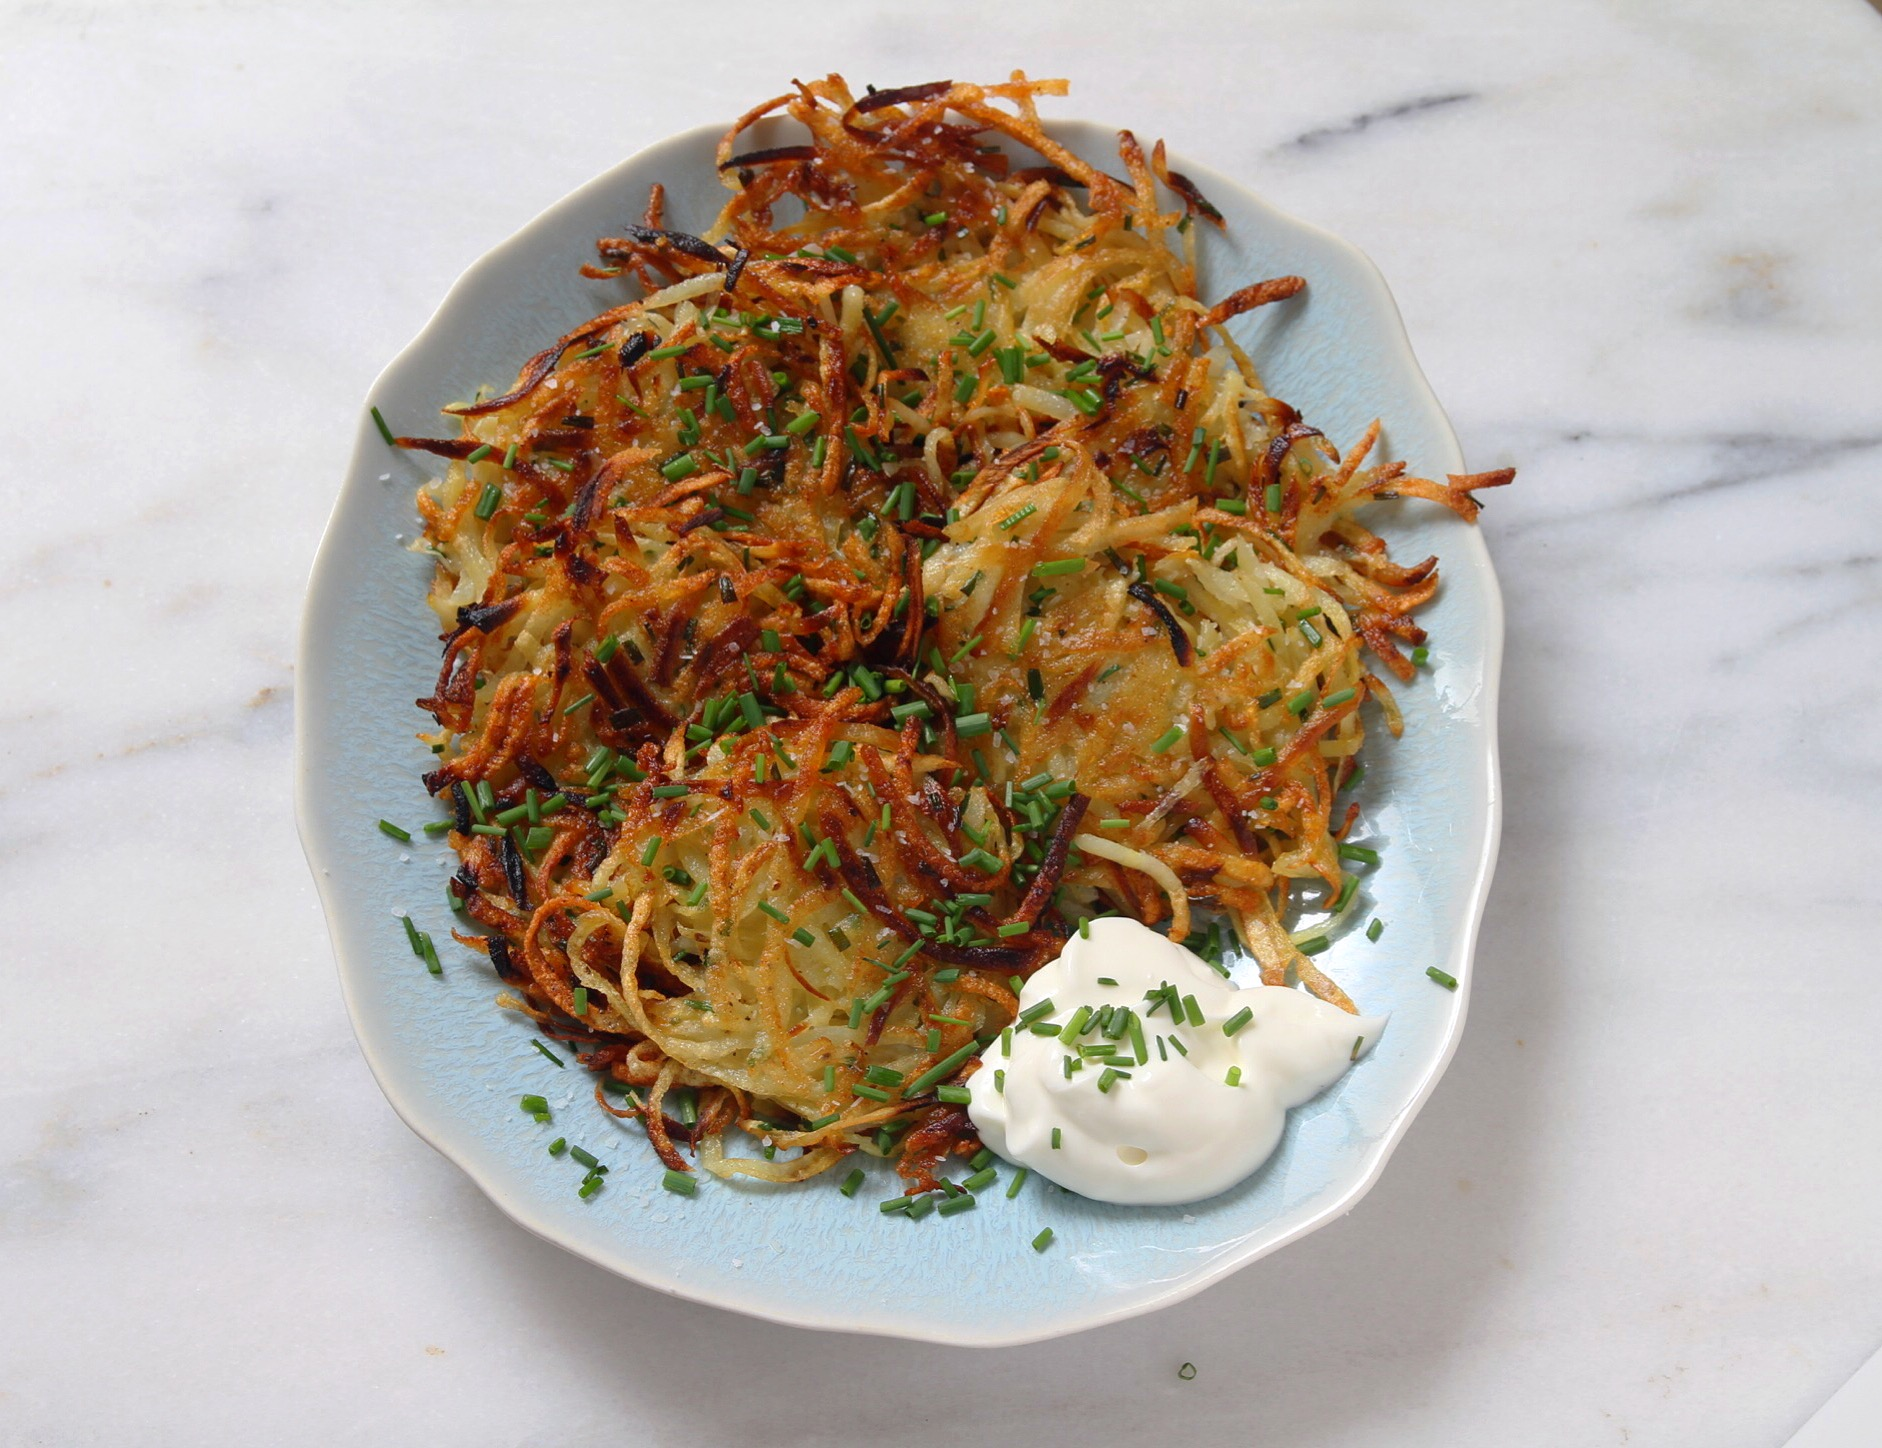 Potato latkes with parsnip, and a side of sour cream for dipping.